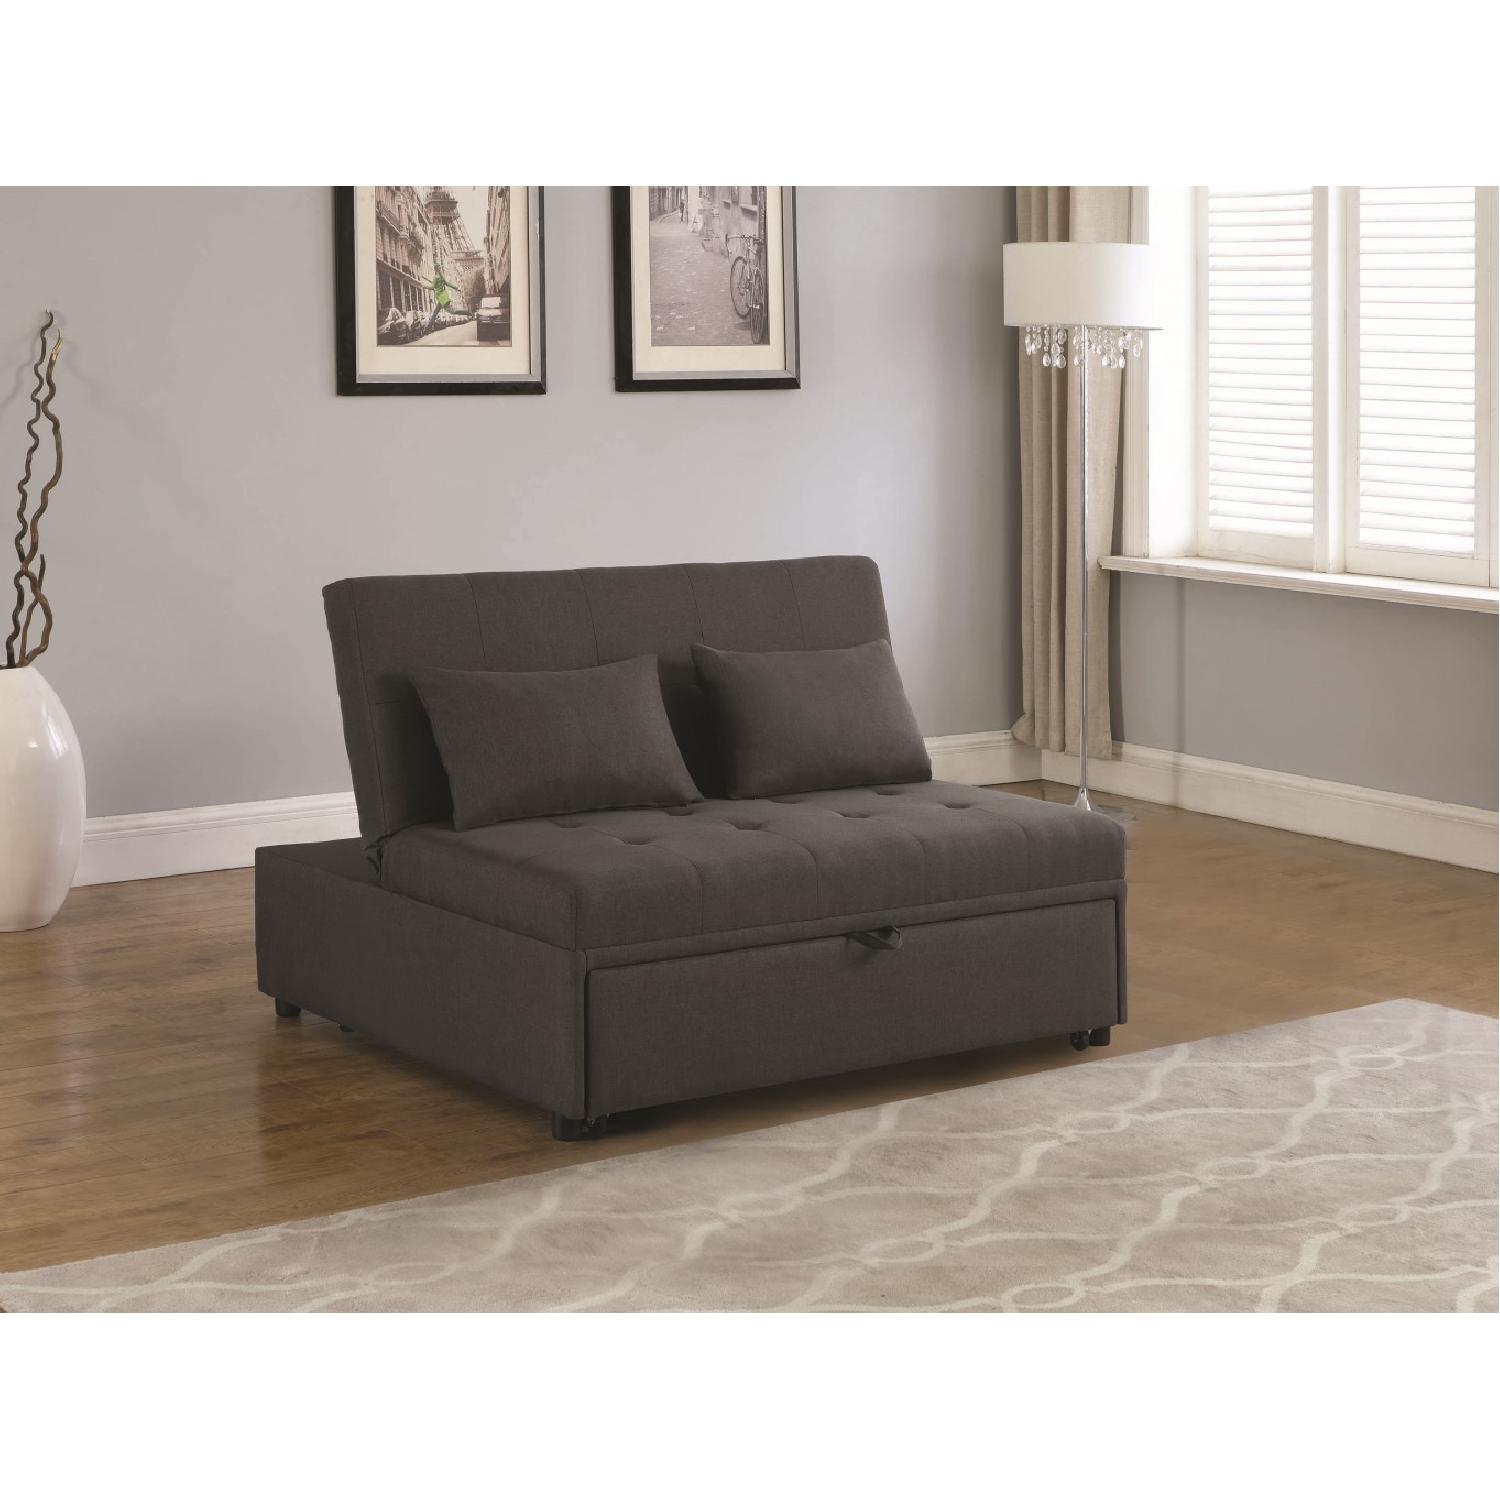 Sofabed in Grey Linen-Like Fabric w/ Pull-Out Sleeper - image-6